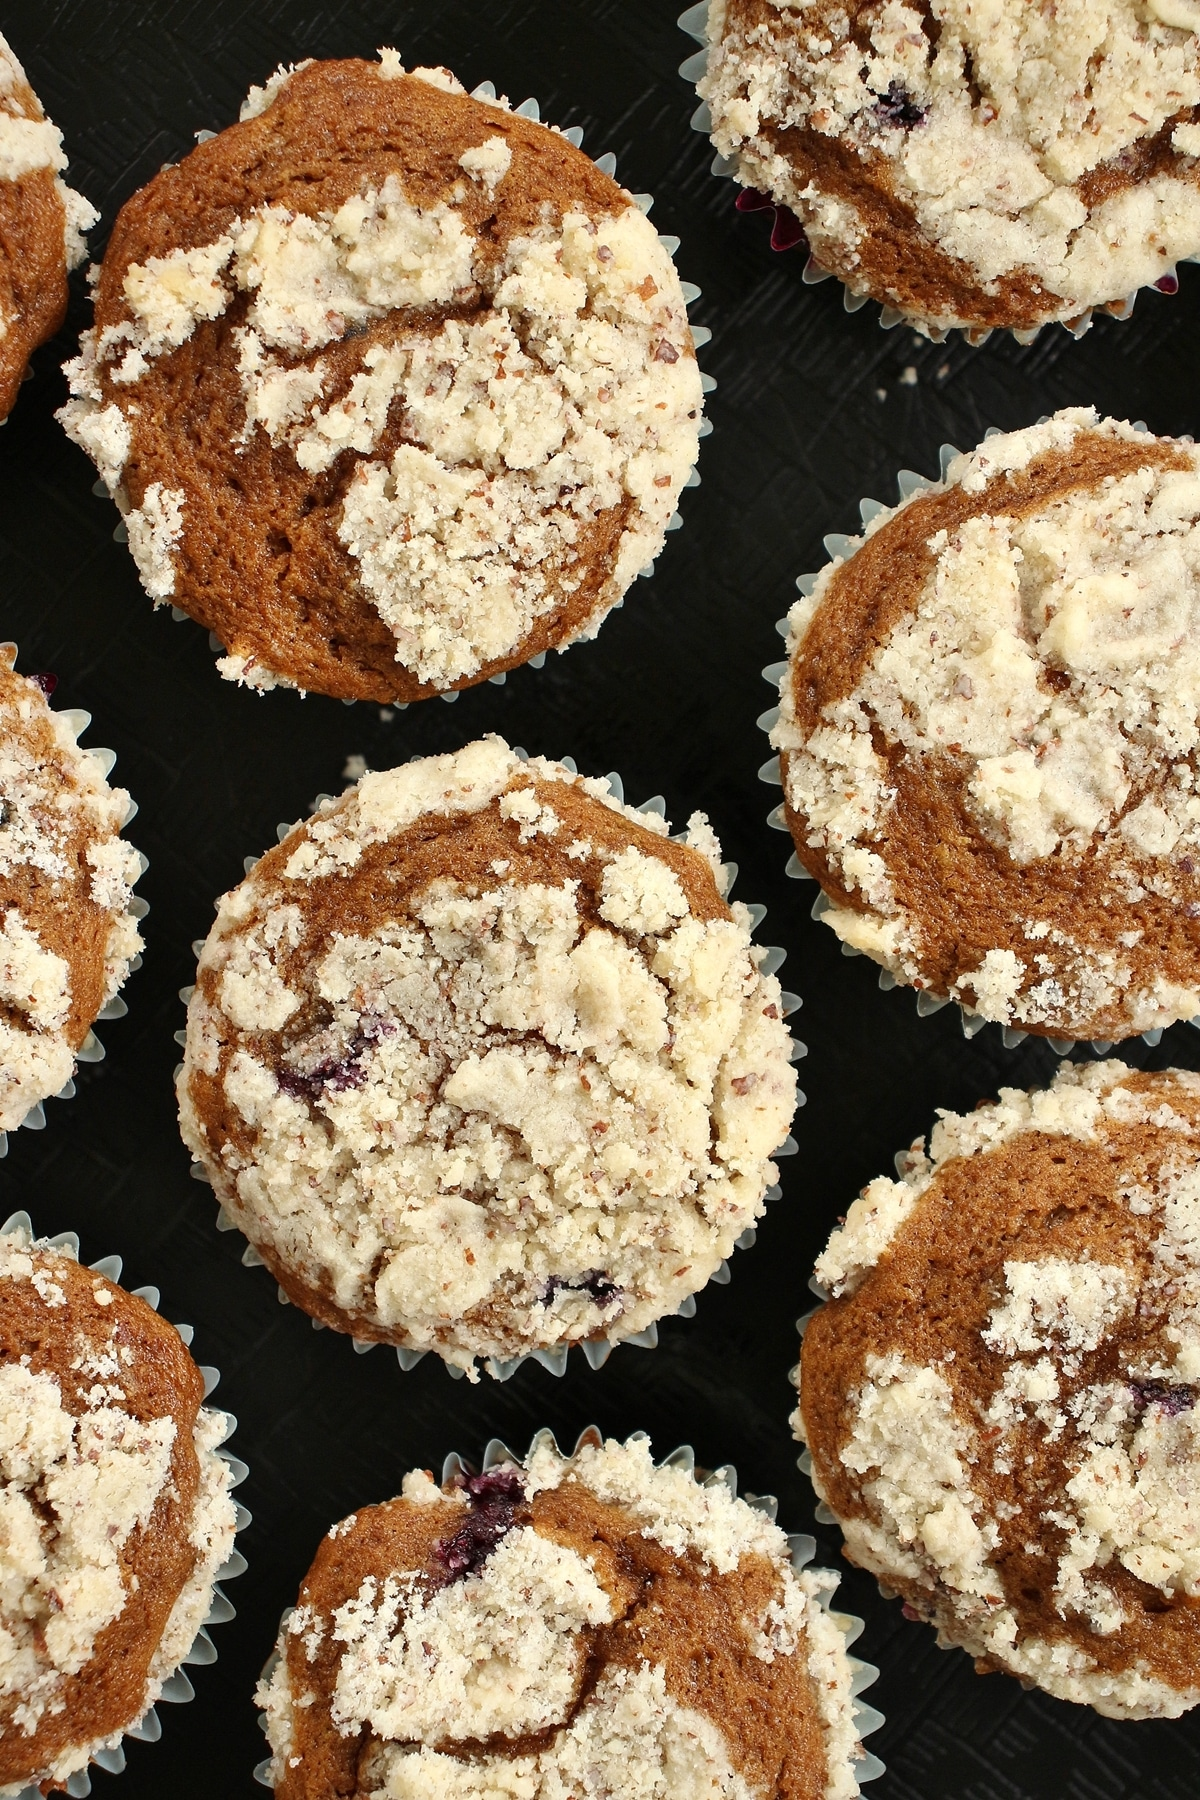 Bouchon Bakery blueberry muffins with streusel topping on a black surface